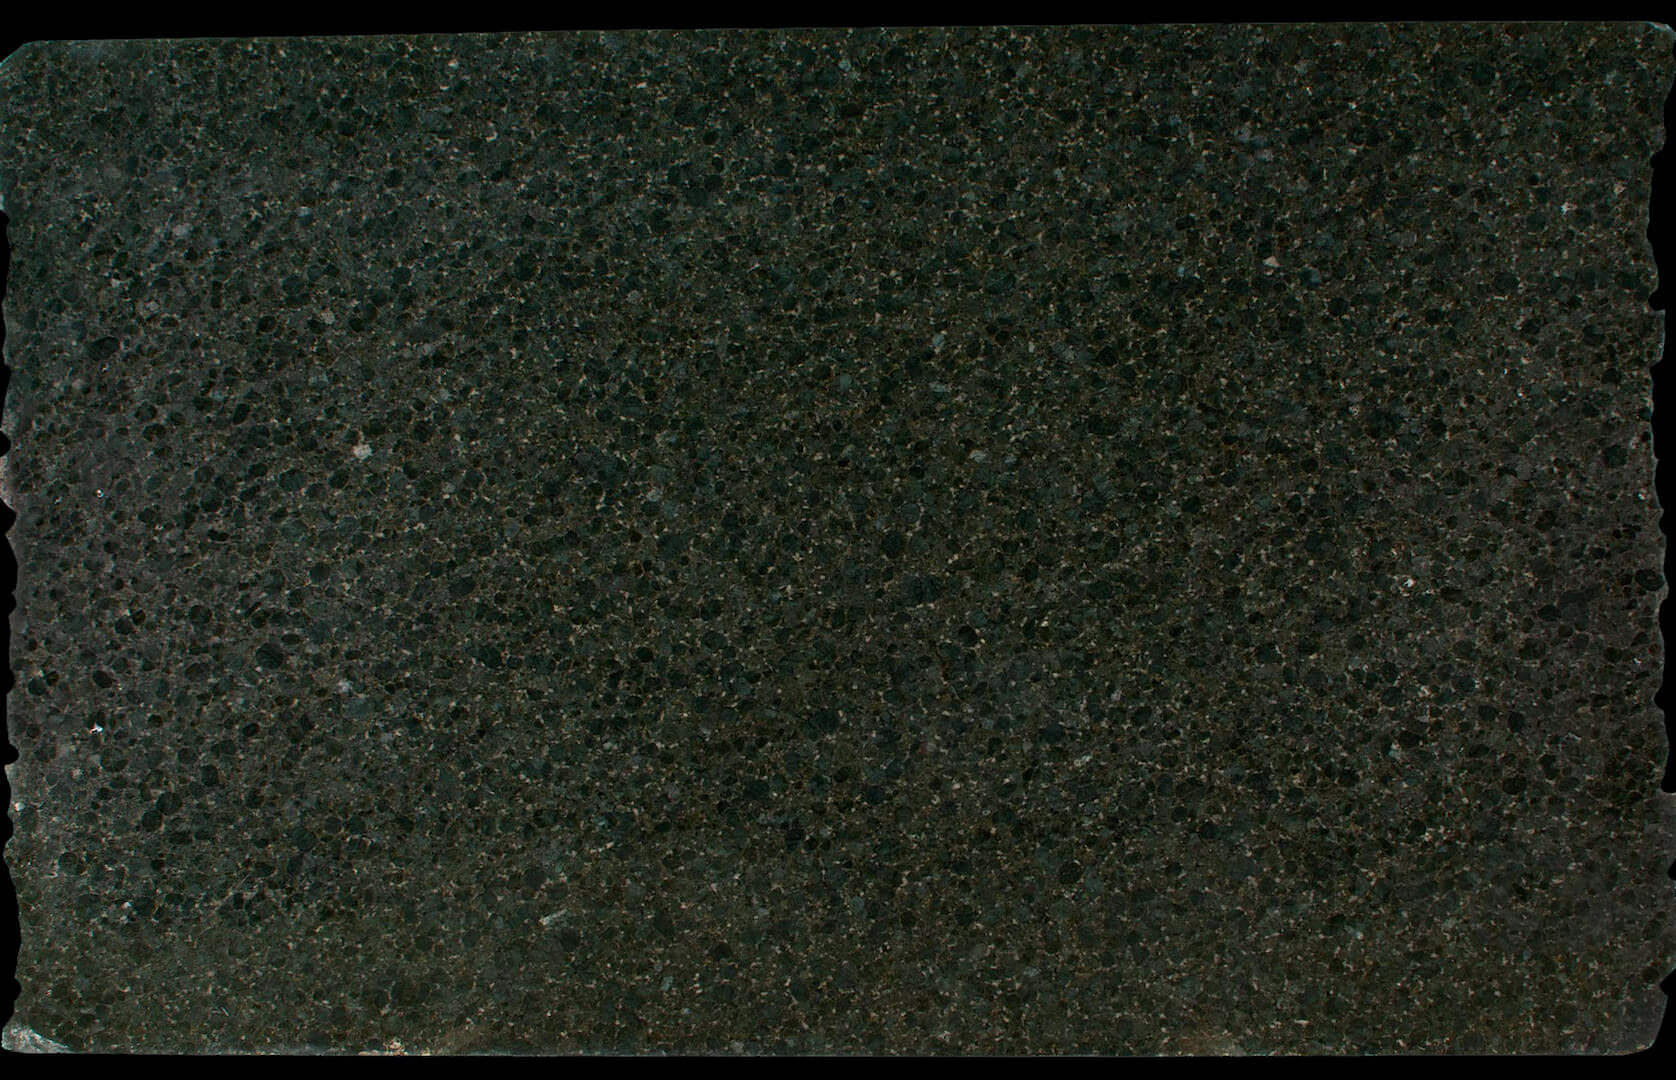 Butterfly Green Granite Countertops Pictures Verde Butterfly Granite Countertops Pictures Pricing